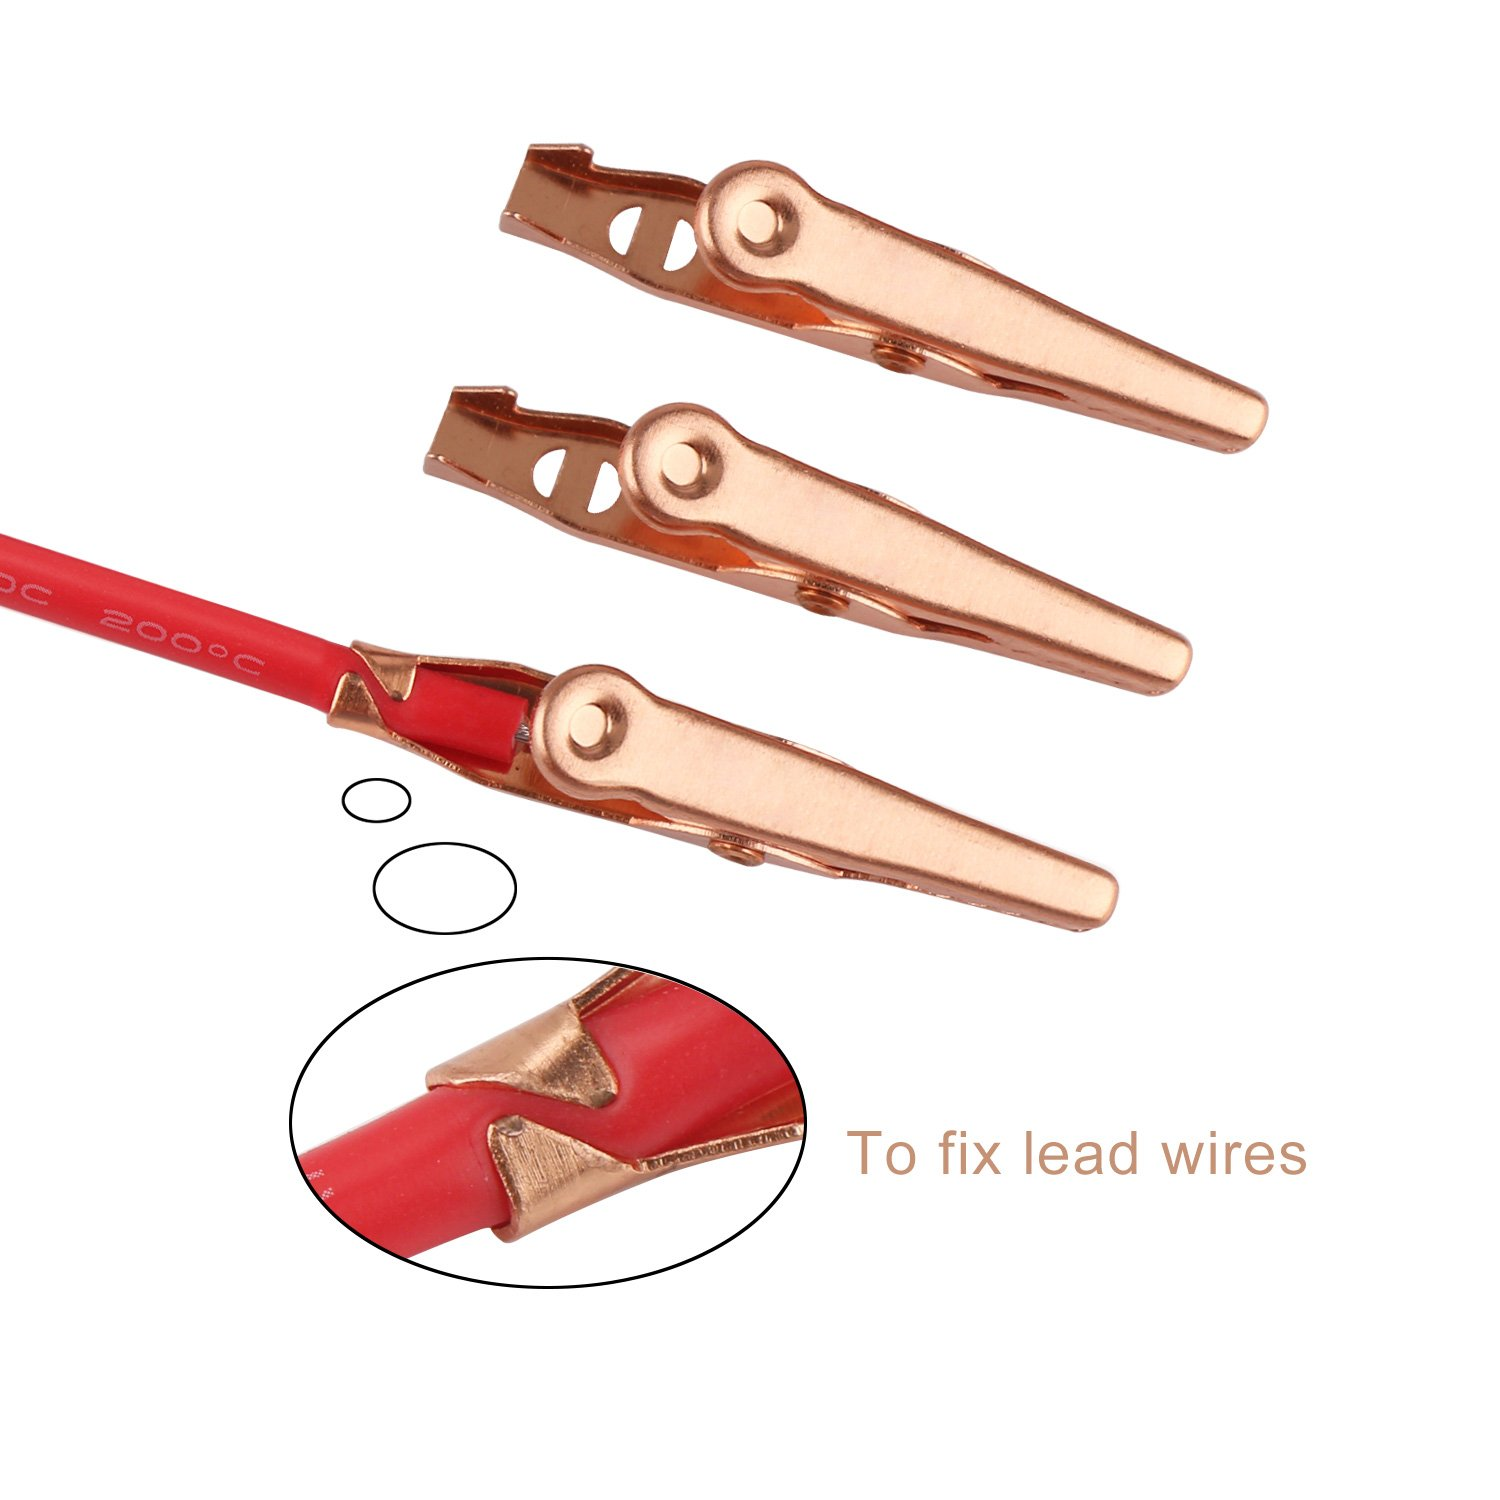 DROK Alligator Clip Wires Pure Copper 19.6 inches Double Ended Electric Test Cables Connectors Wire Circuit Experiment 2 pcs Crocodile Alligator Clip Clamp Test Leads